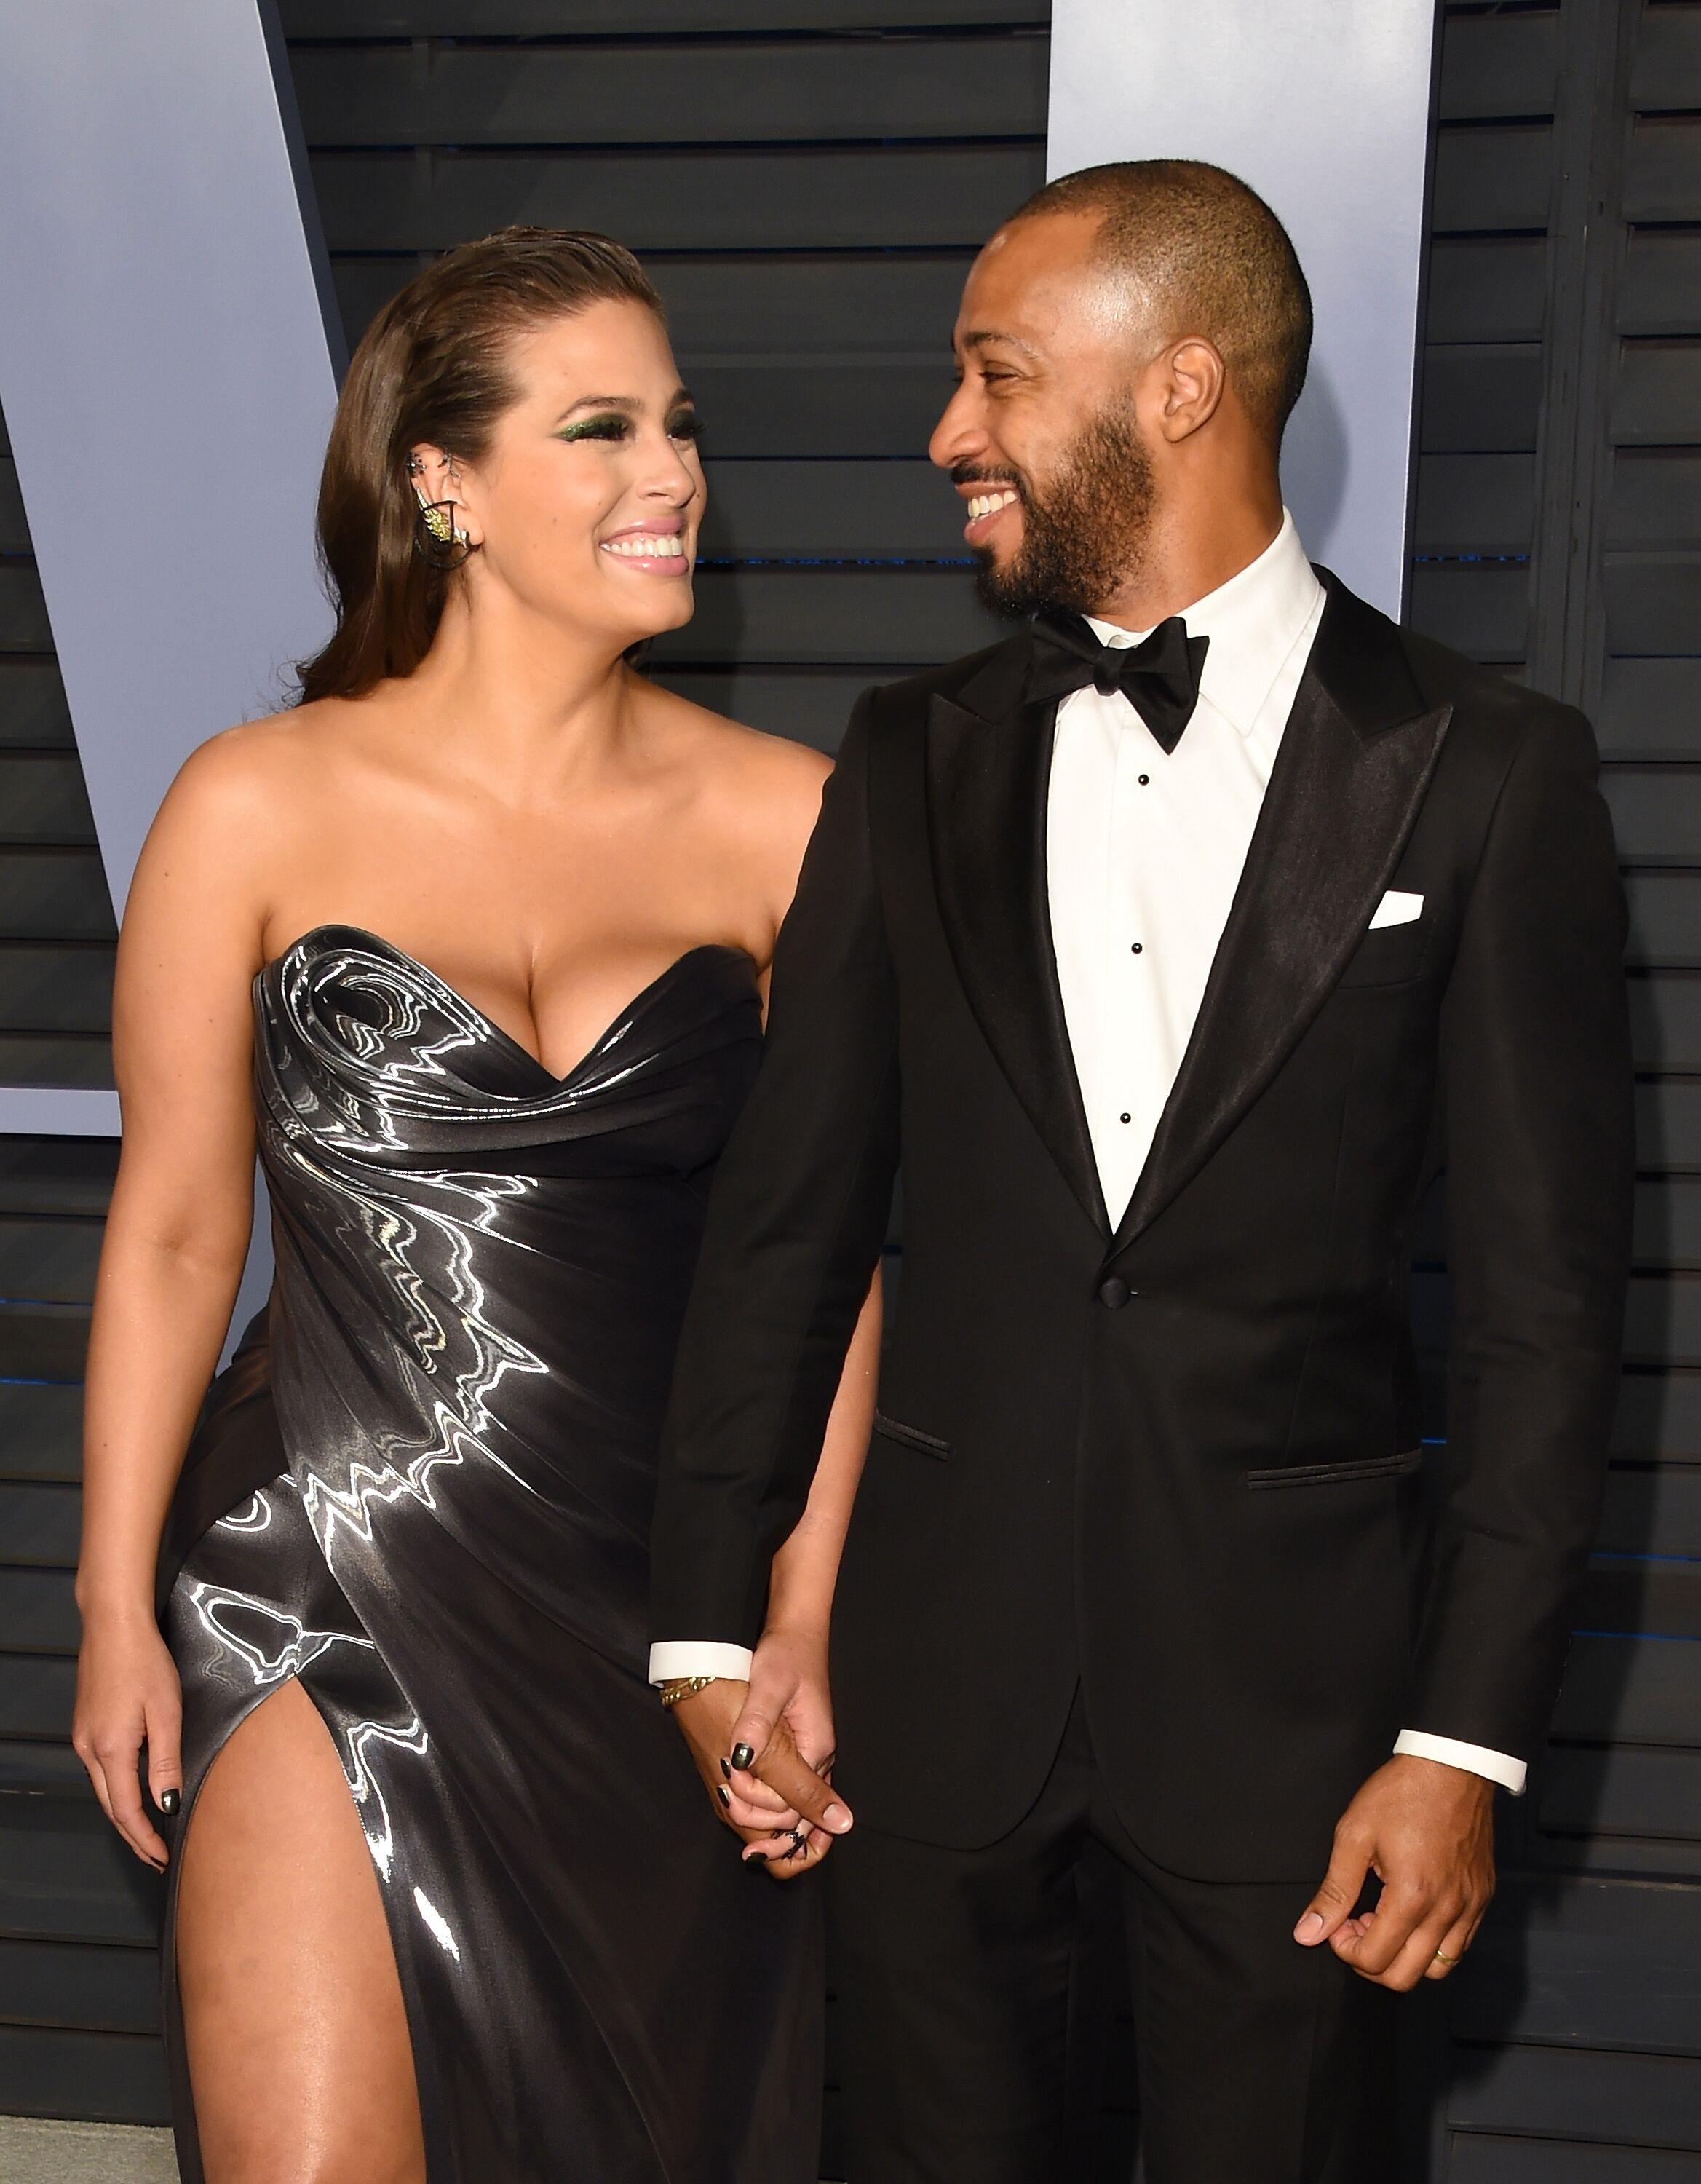 Ashley Graham and Justin Ervin attend the 2018 Vanity Fair Oscar Party hosted by Radhika Jones at the Wallis Annenberg Center for the Performing Arts on March 4, 2018 in Beverly Hills, California | Photo: Getty Images